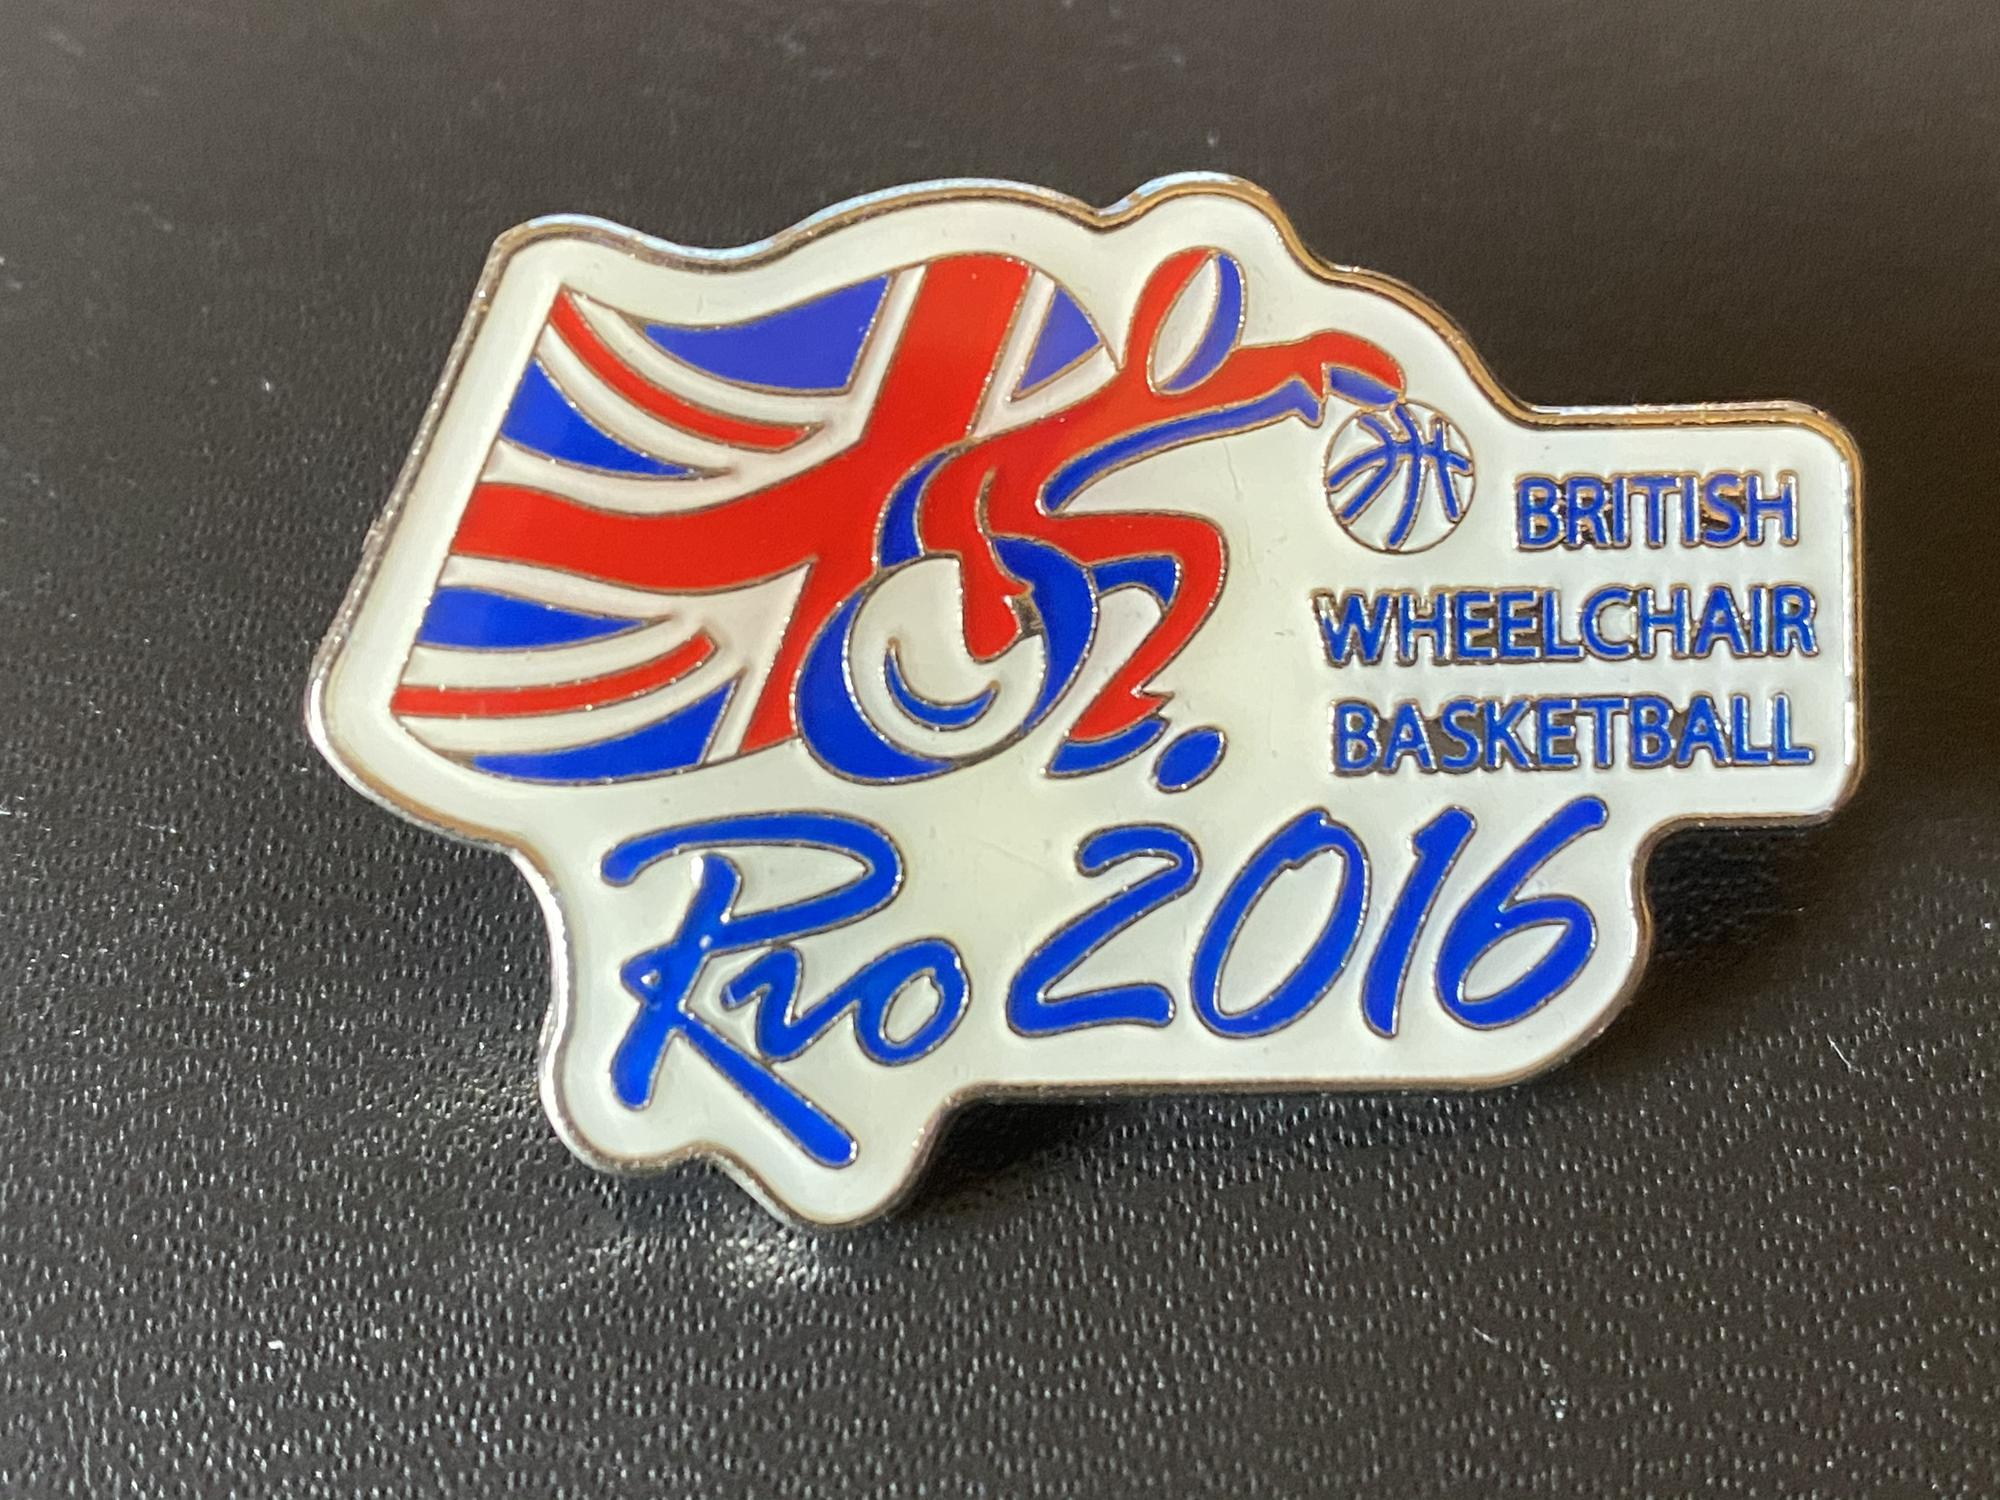 British Wheelchair Basketball Rio 2016